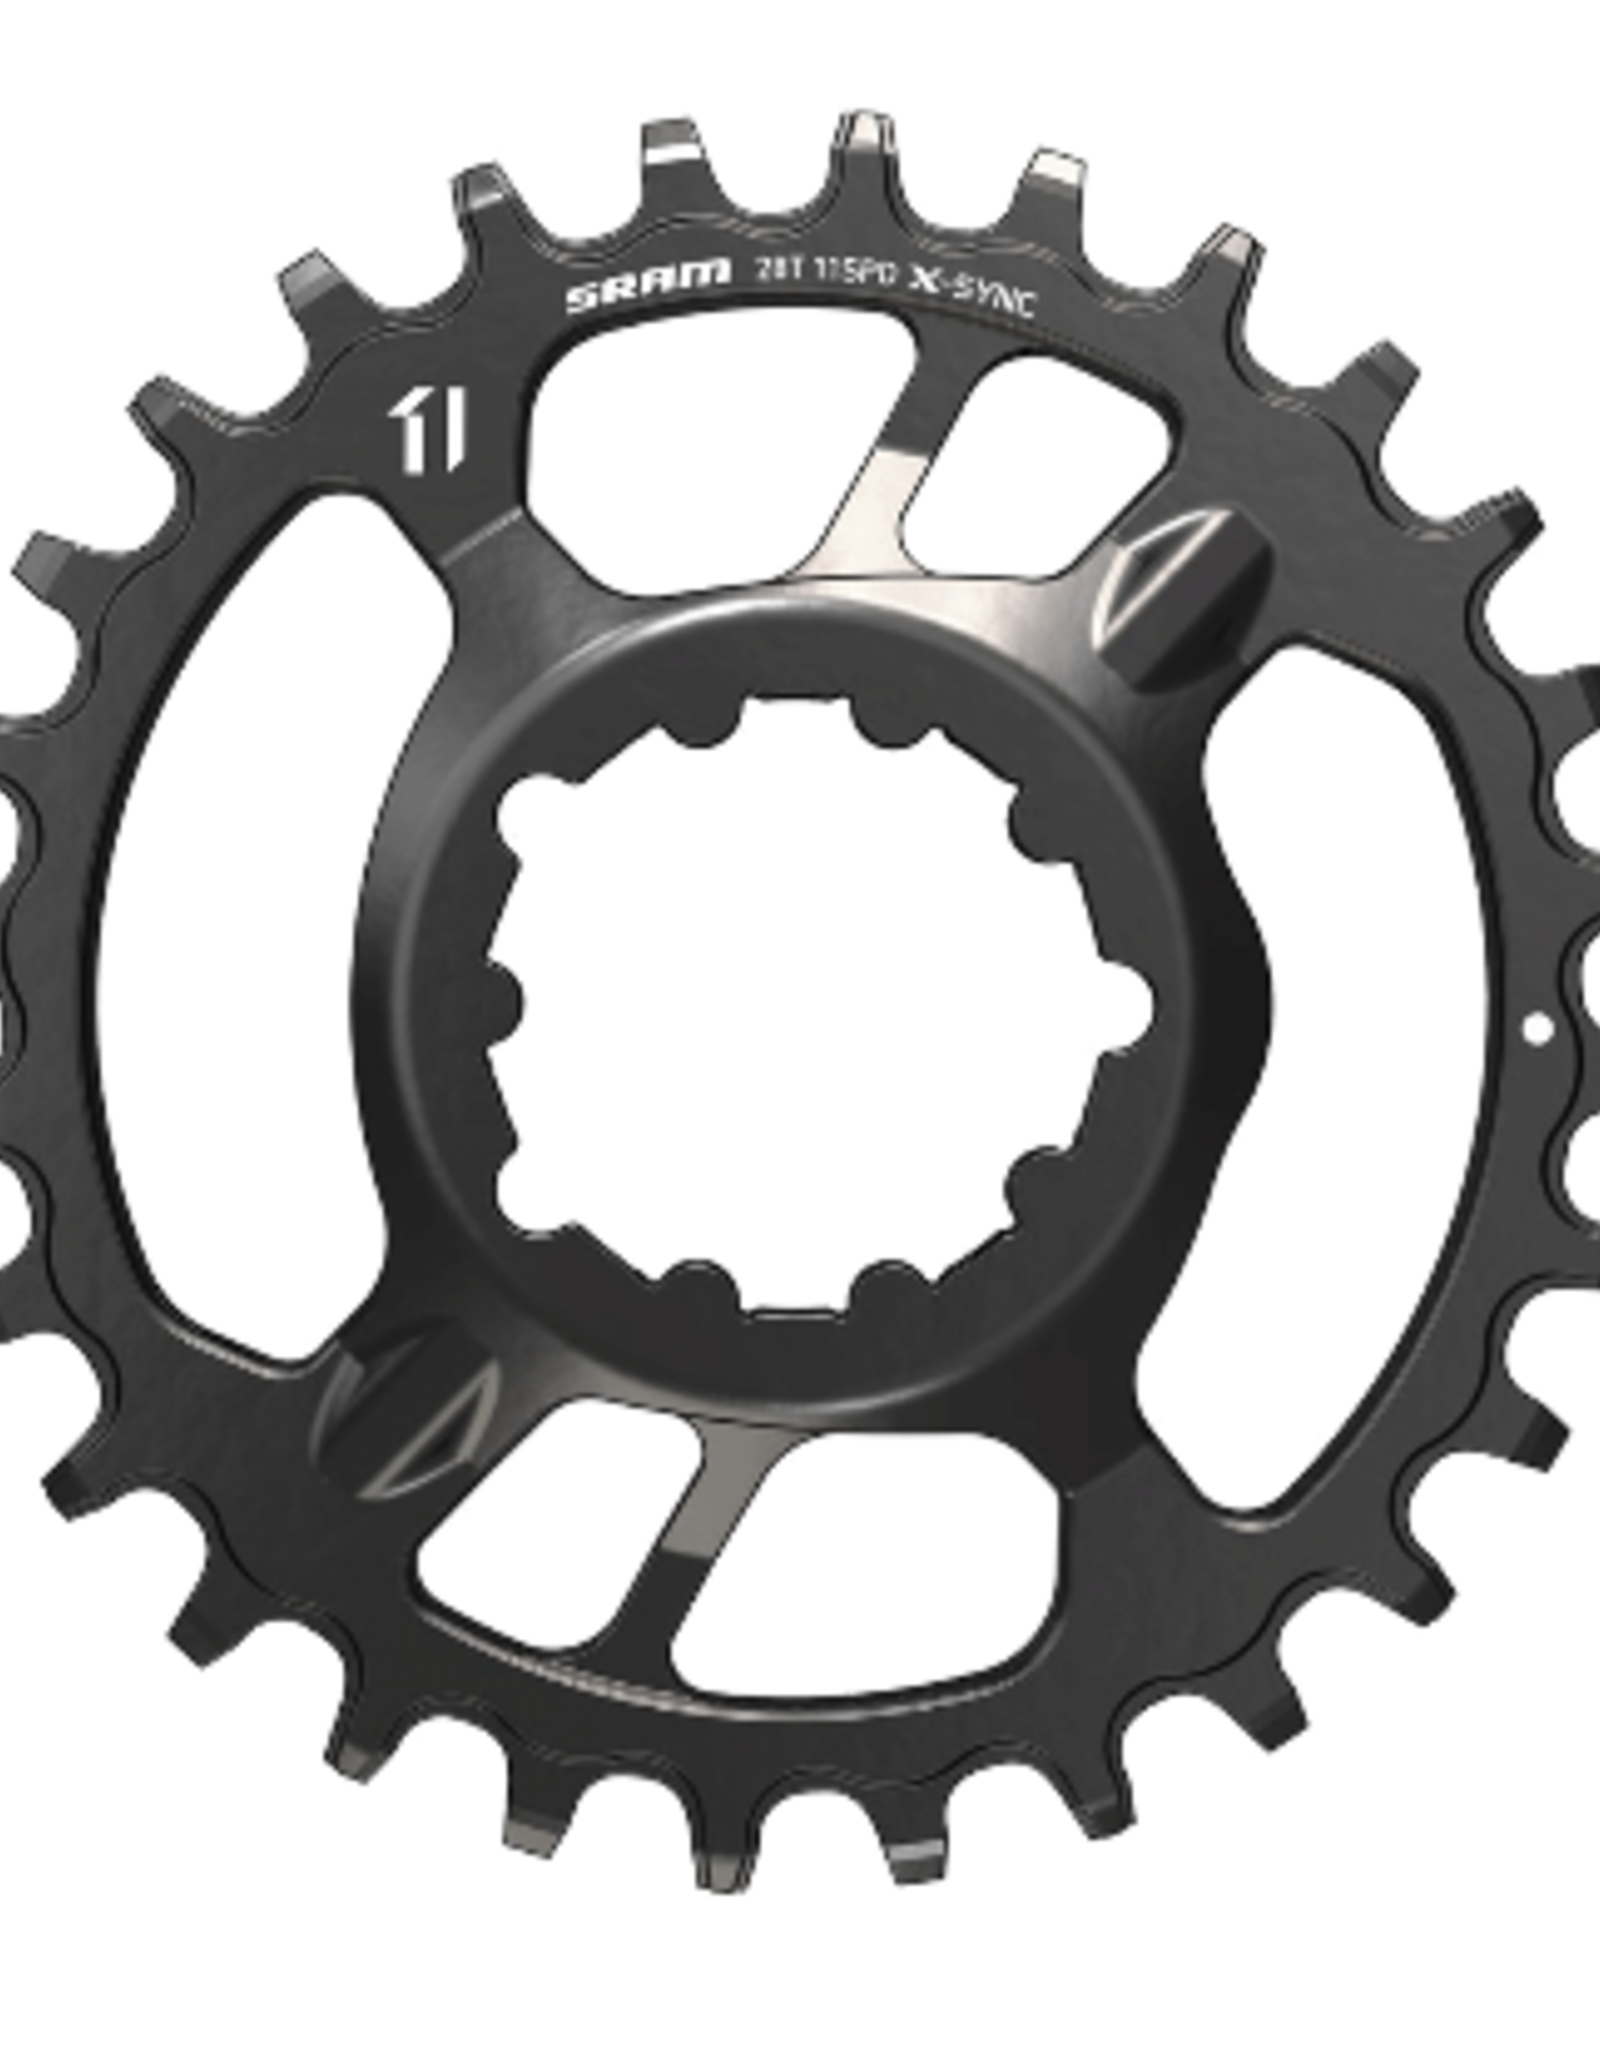 srAM SRAM chain ring X-Sync 2 steel direct mount 3MM offset Eagle 34t